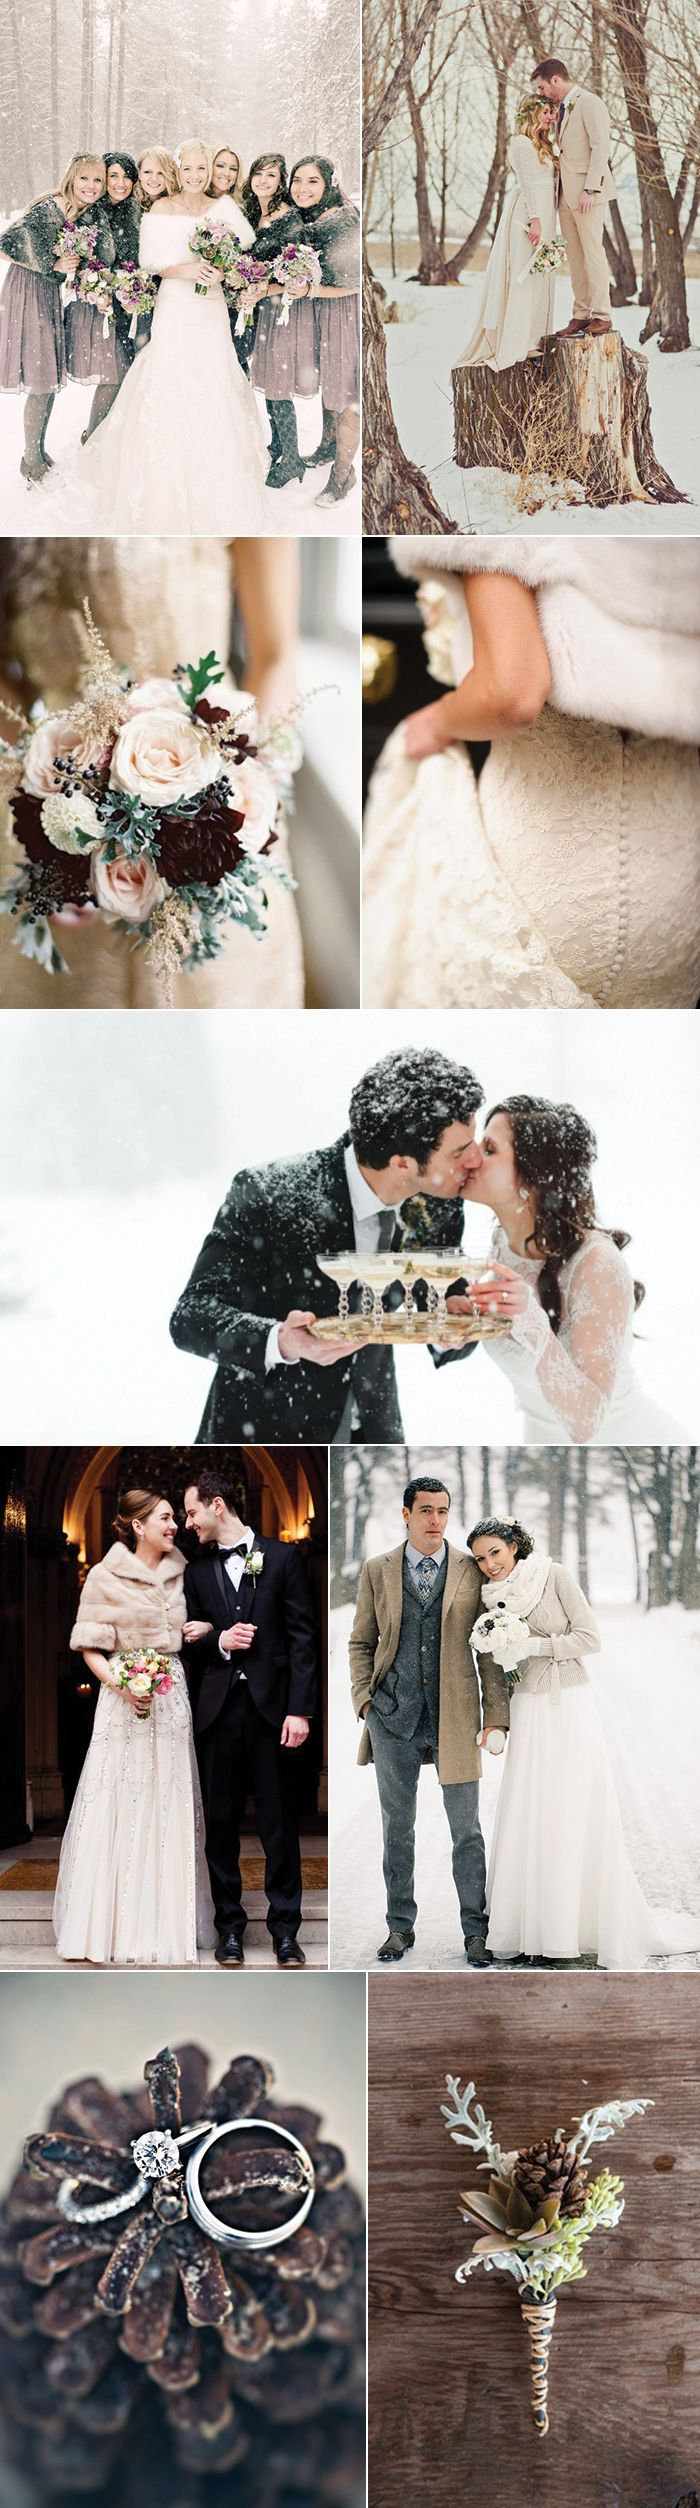 Winter Wedding Decor Colors Cakes Flowers Invites And More The 360 At Skyline Will Look Gorgeous With These Wonderland Details